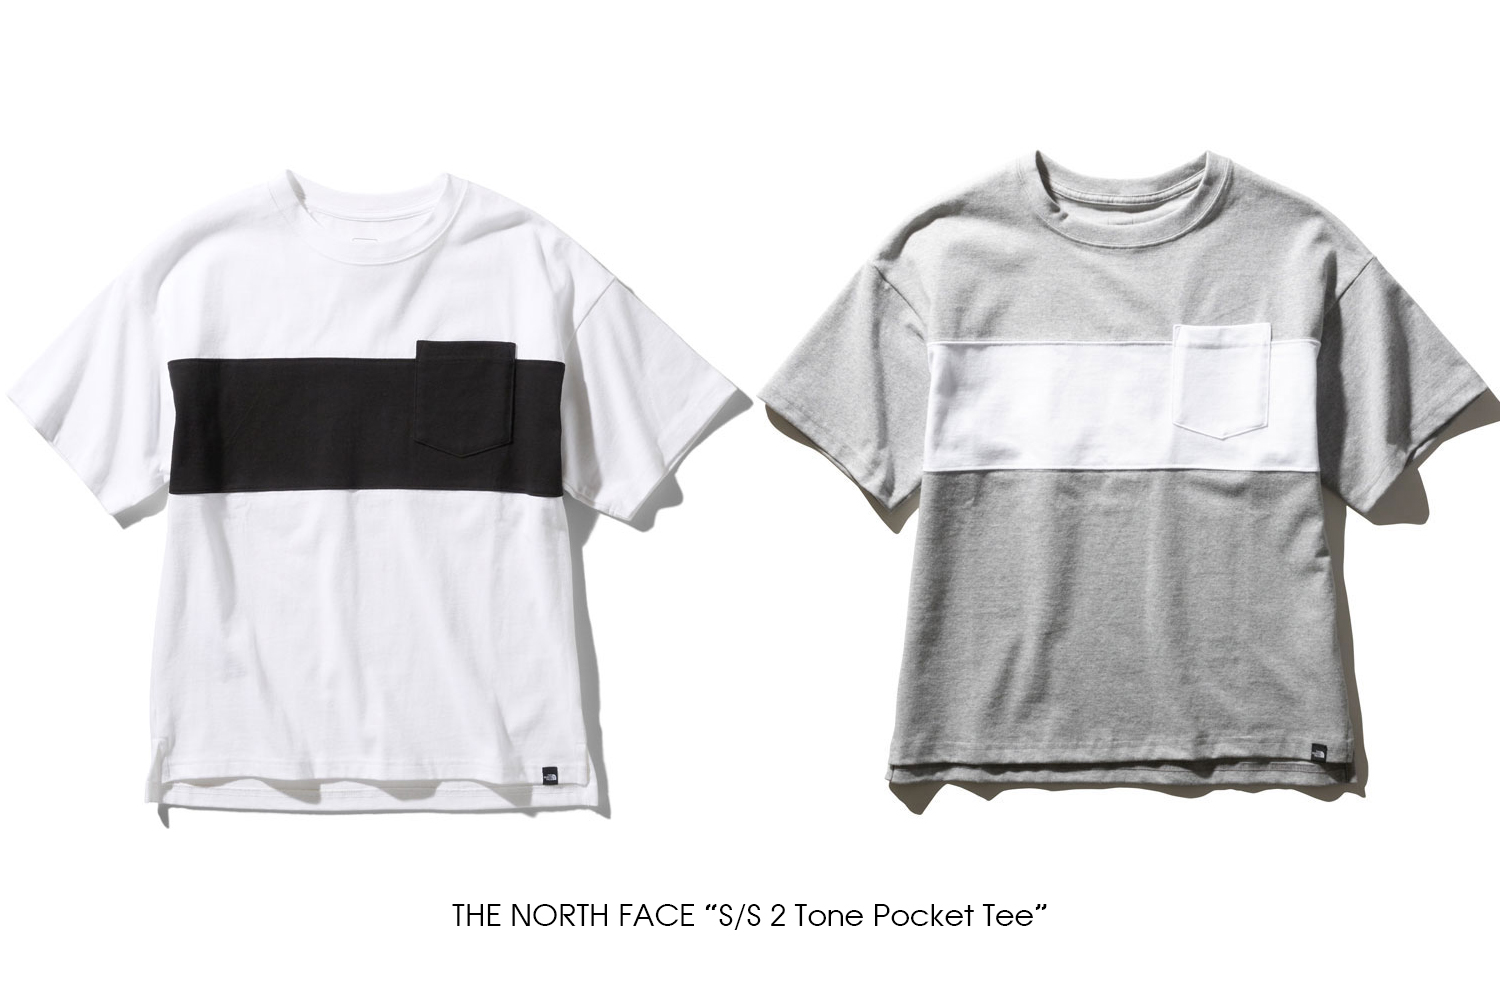 "THE NORTH FACE ""S/S 2 Tone Pocket Tee"""